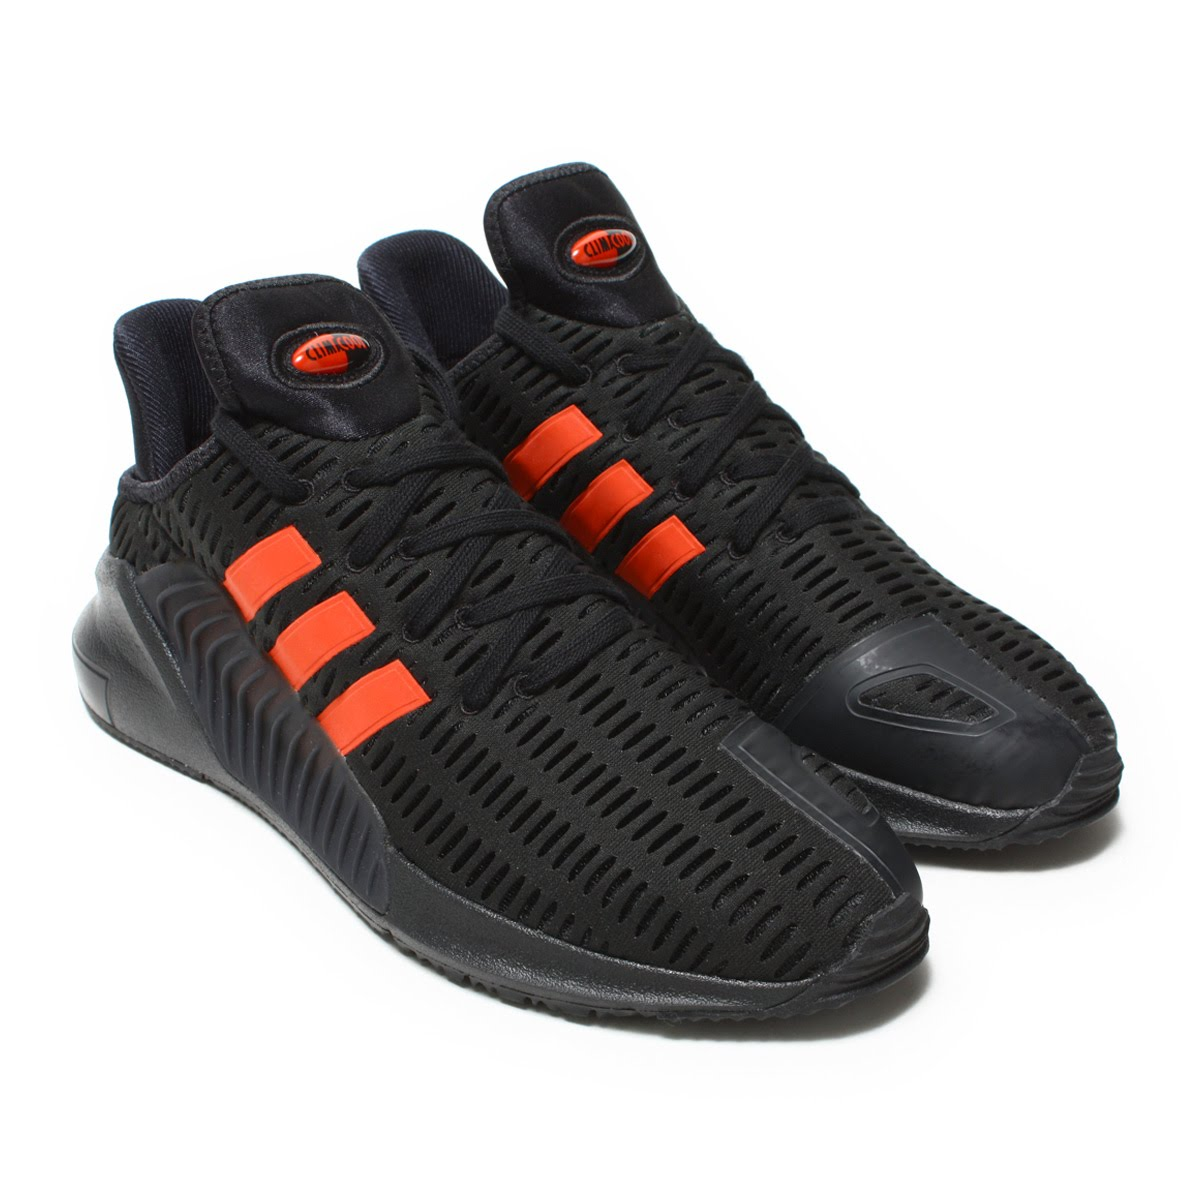 low priced f90e4 2dbb3 adidas Originals CLIMACOOL 0217 (アディダスオリジナルスクライマクール 0217) Core Black   Hi-res RedCore Black 18SS-I